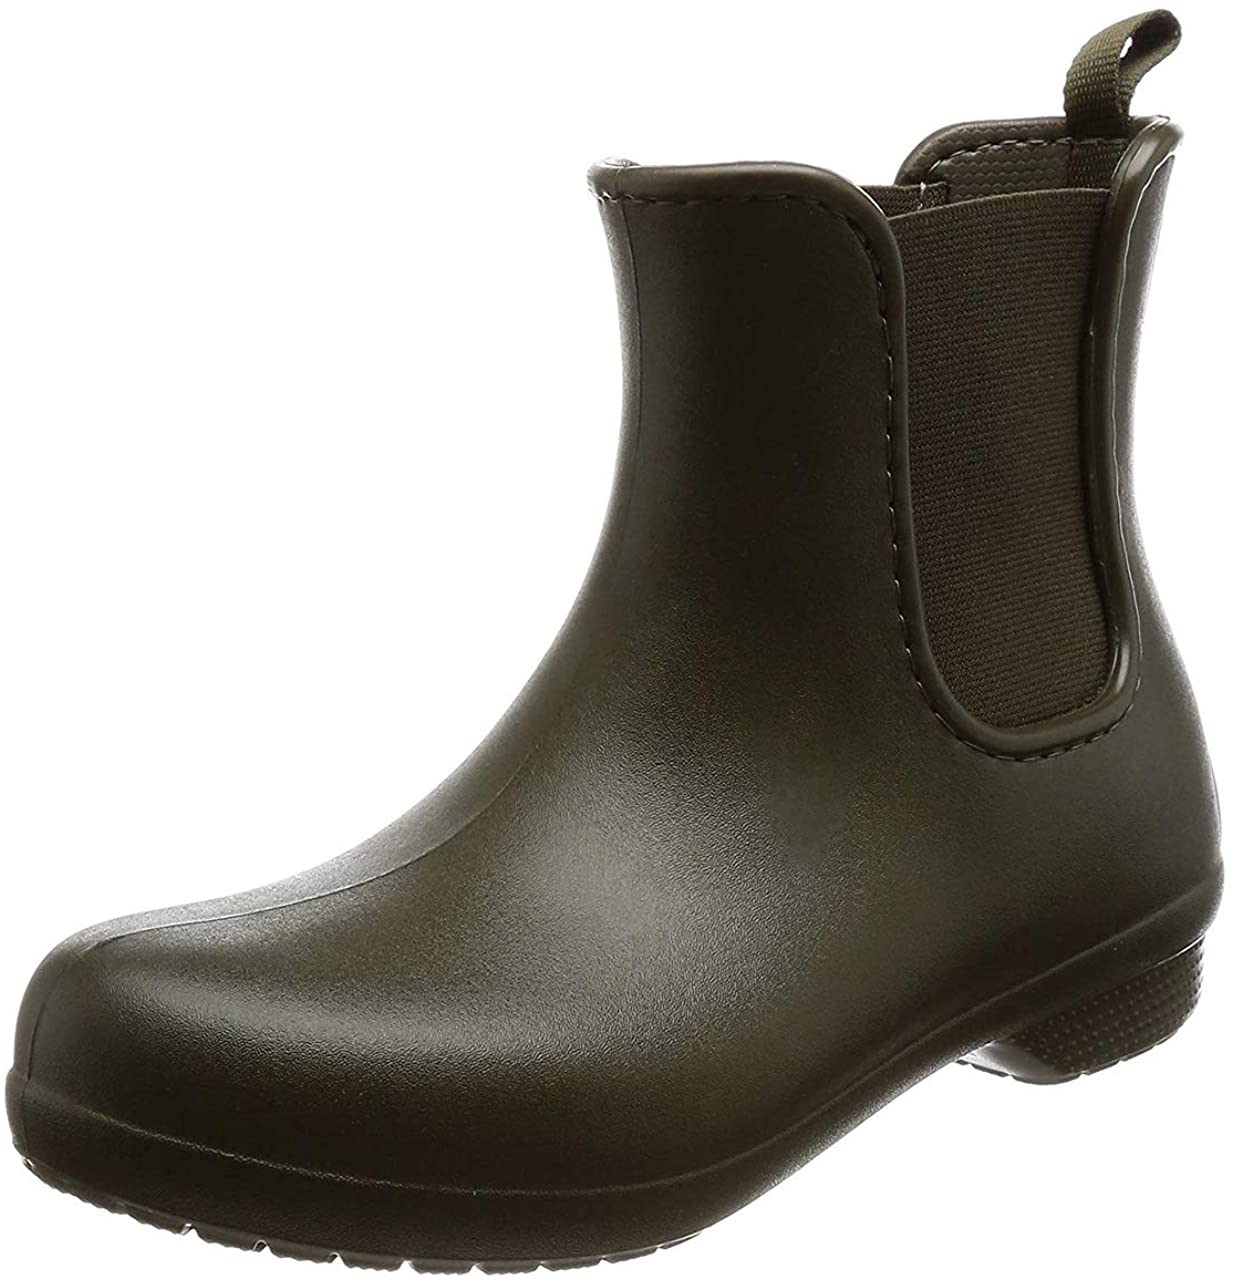 The Best All Day Wear Womens Quality Garden Boots